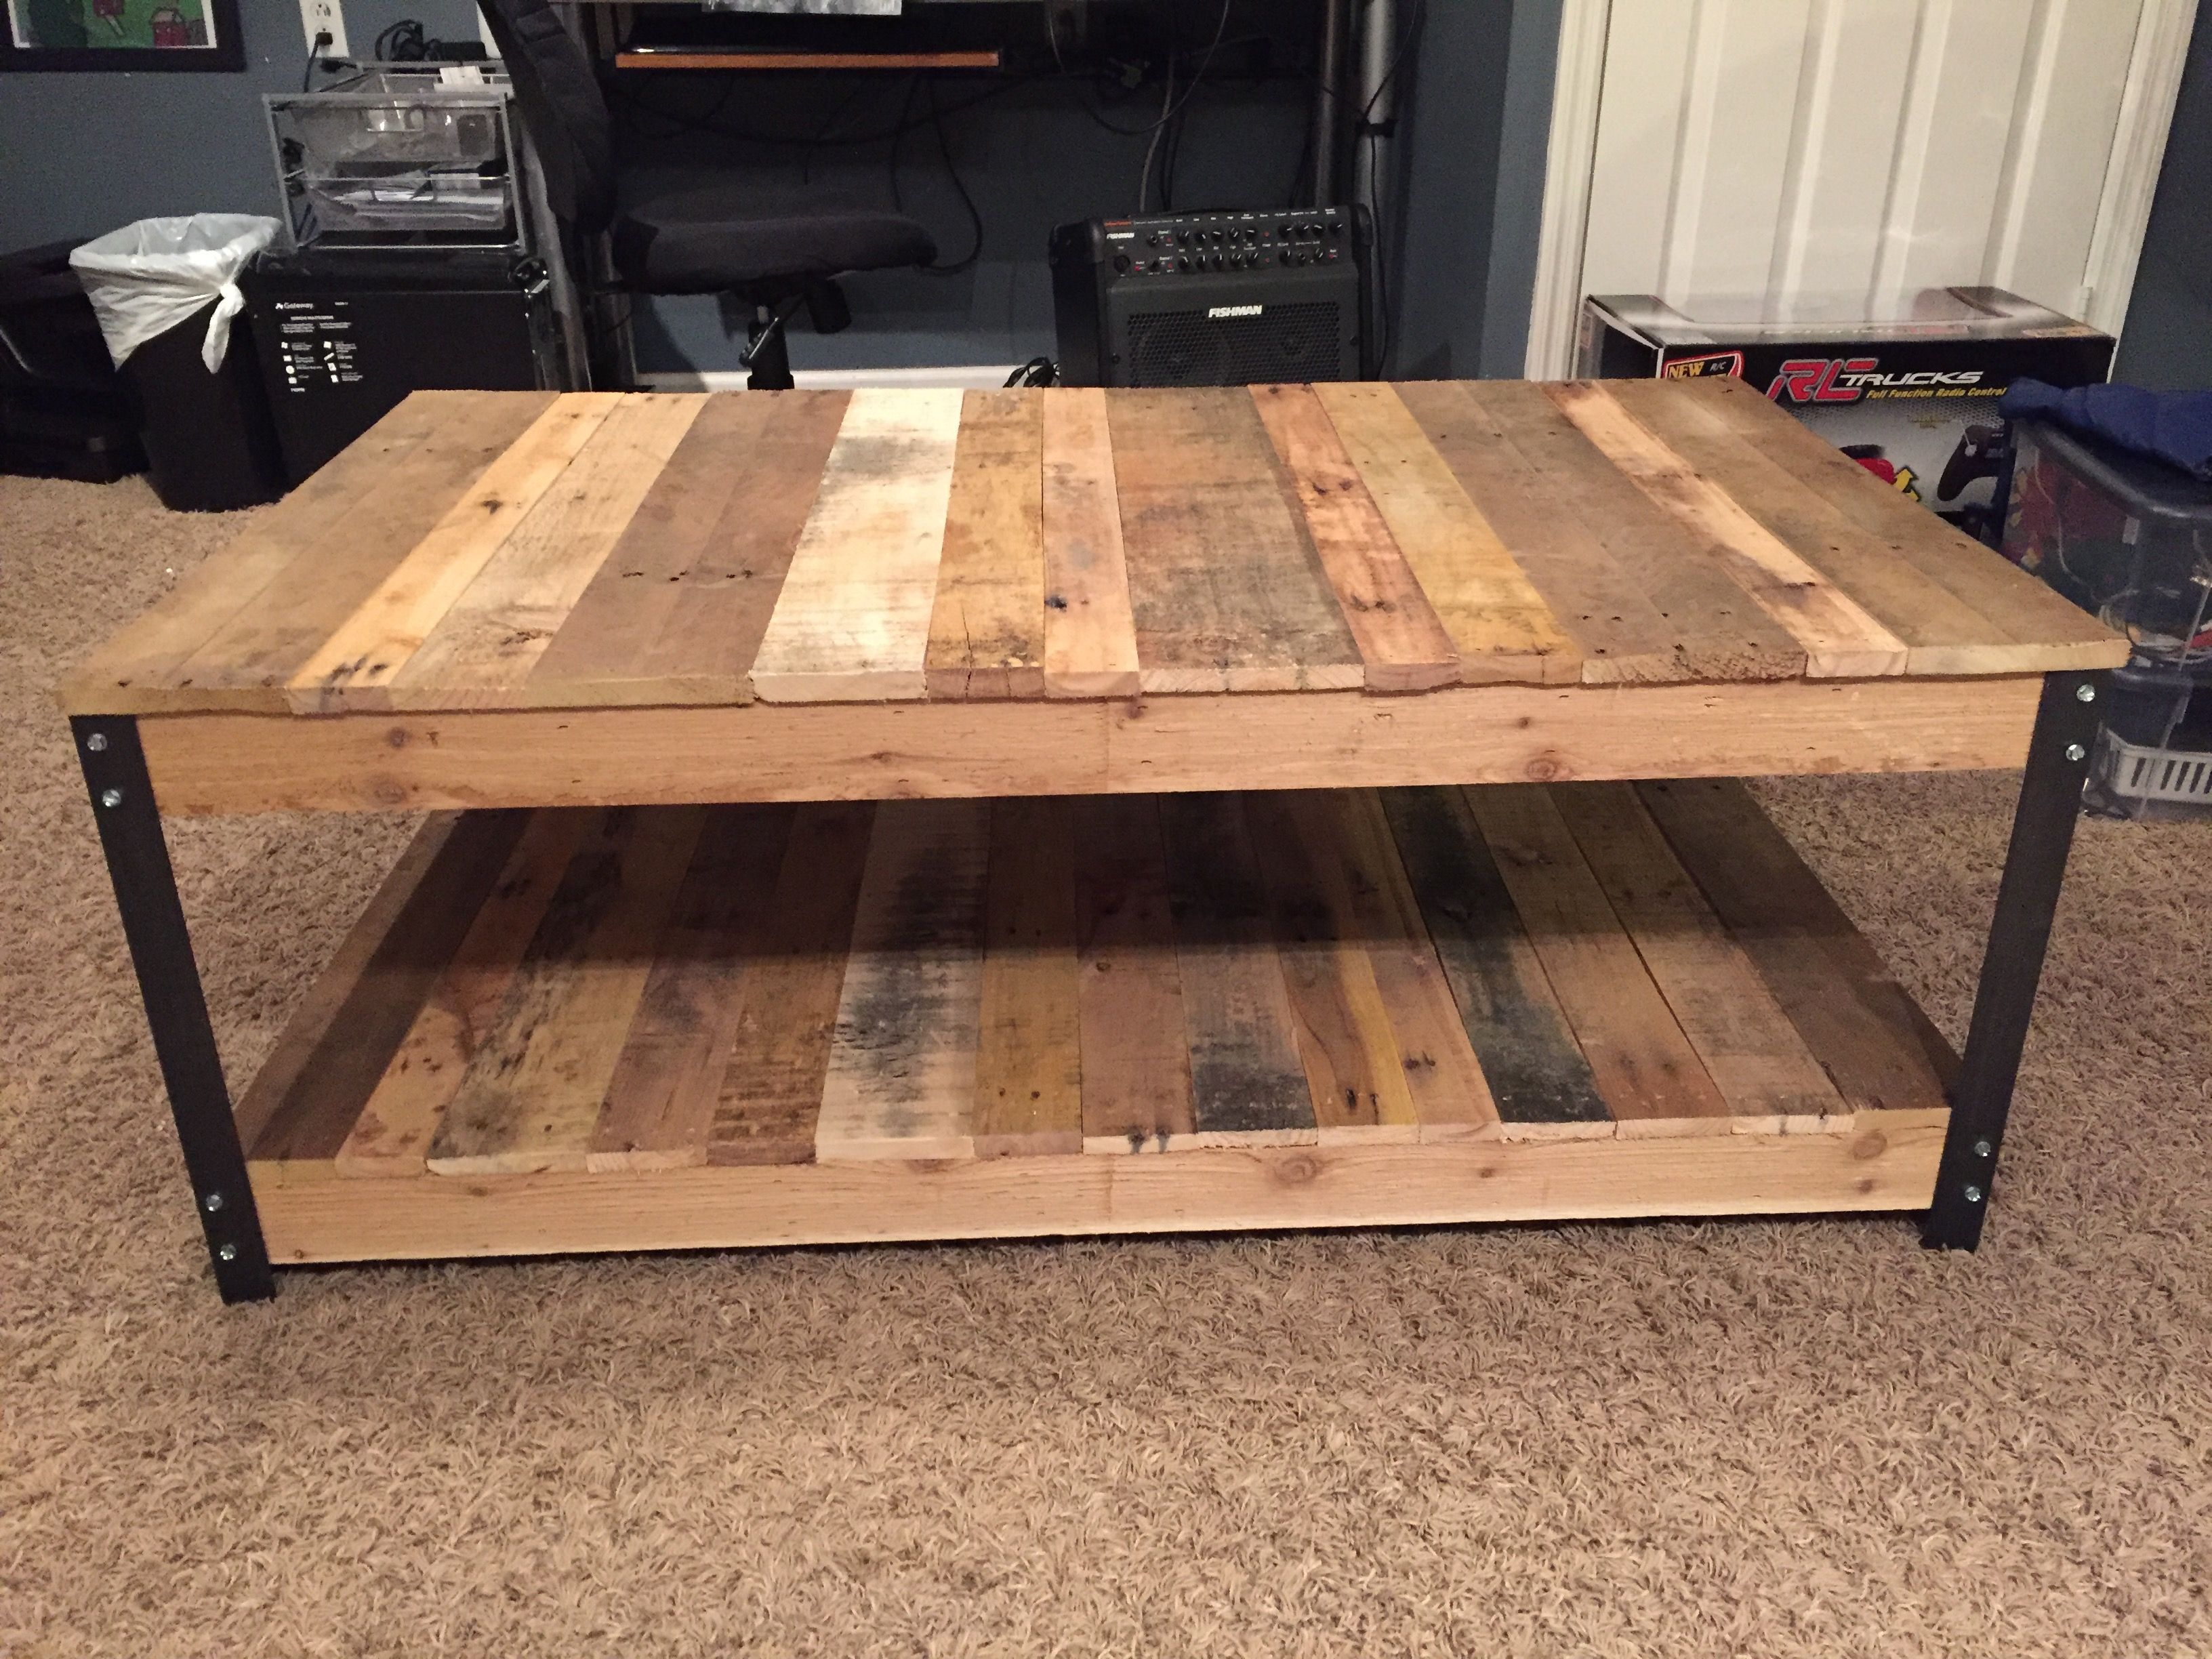 Diy Coffee Table Made From Pallet Wood And Angle Iron Coffee Table Made From Pallets Iron Coffee Table Coffee Table [ 2448 x 3264 Pixel ]